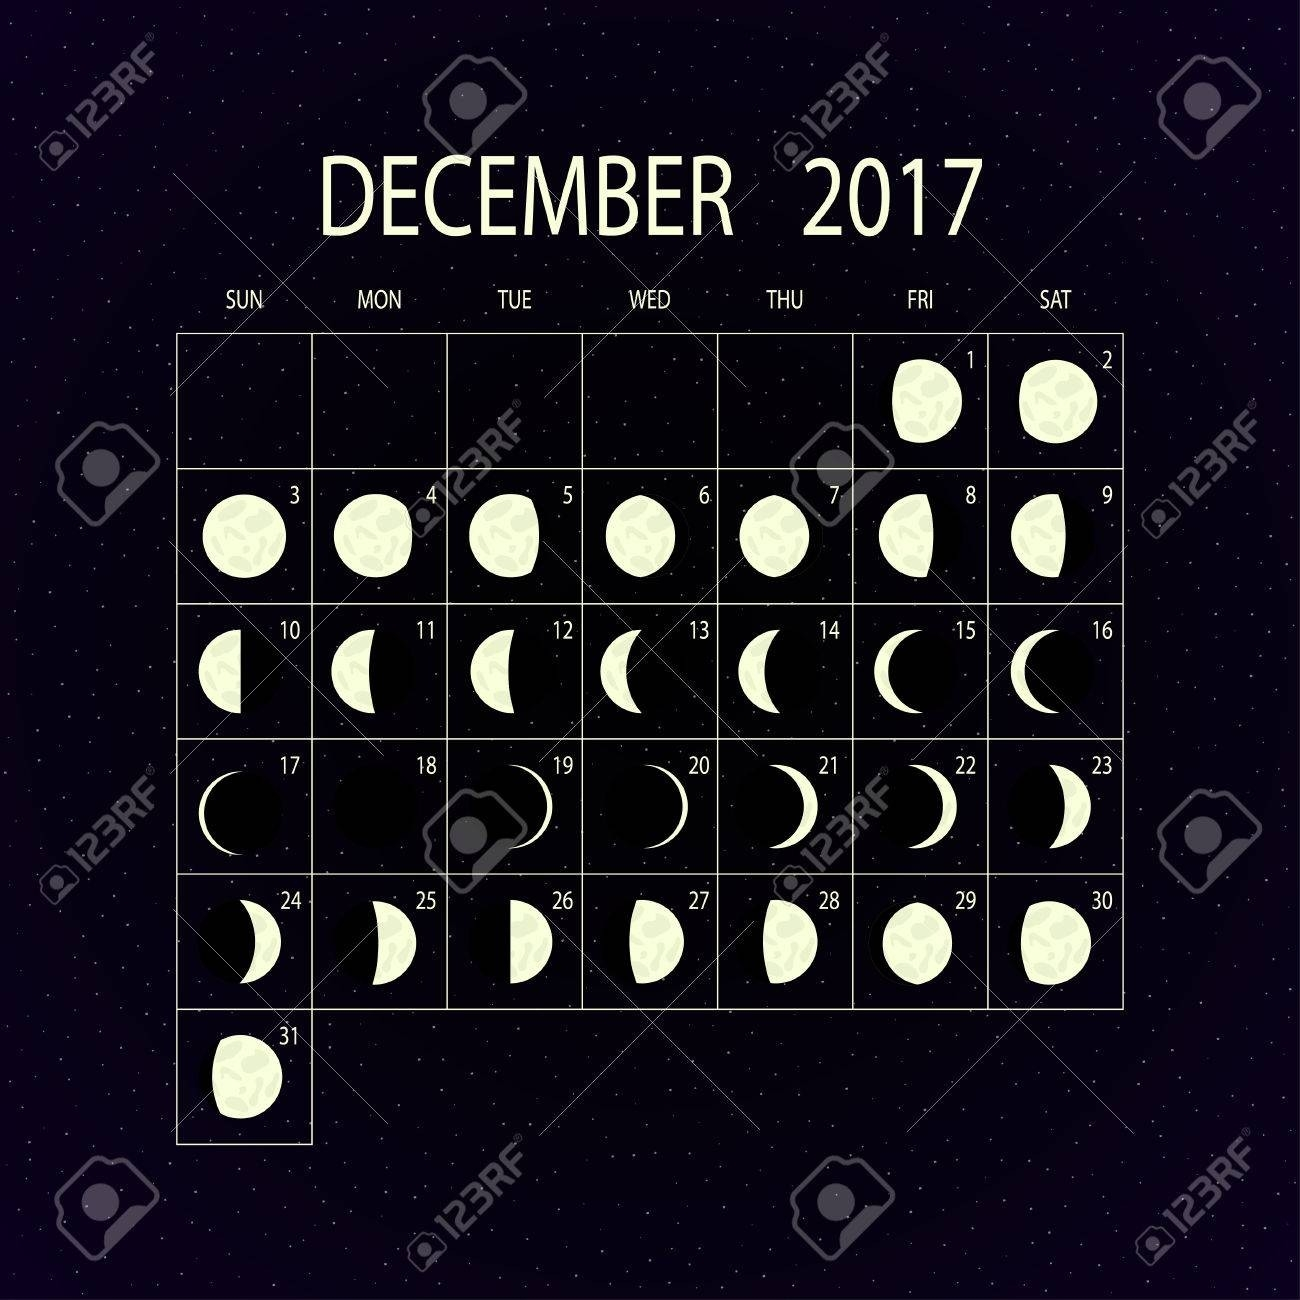 Moon Chart December 2017 - Toskin  2017 Moon Phase October